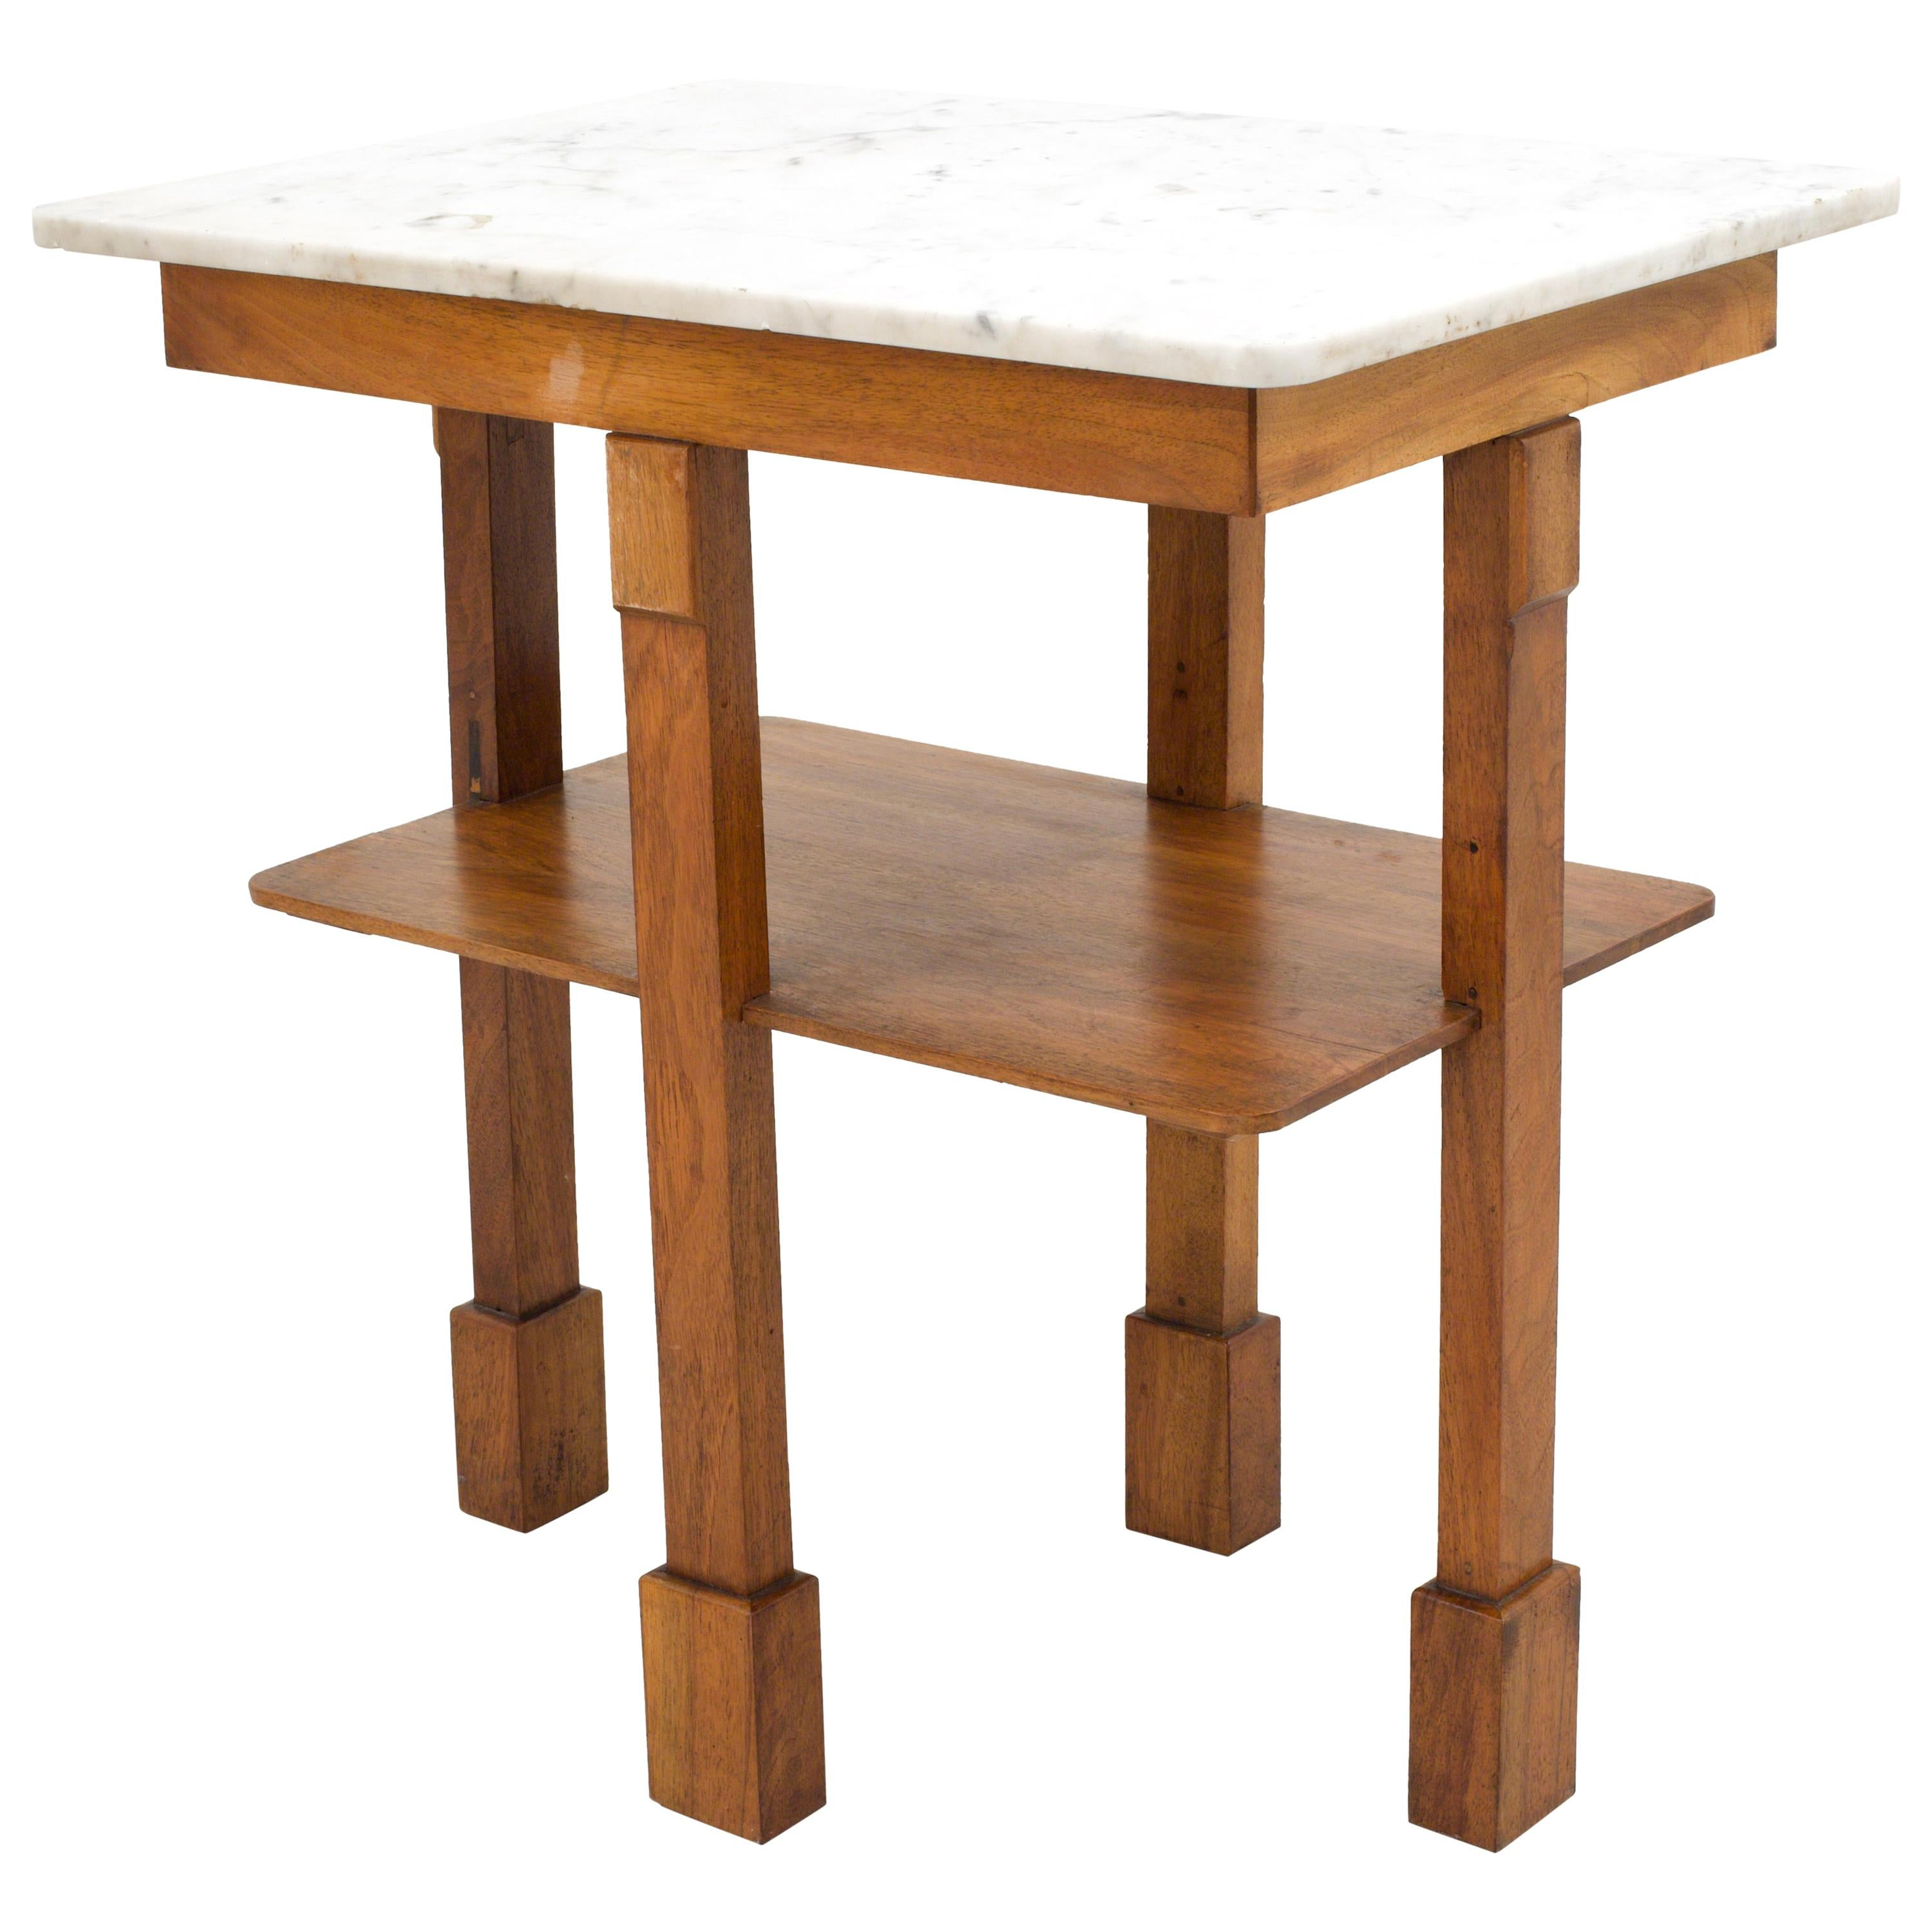 Art Deco Side Table in Oak and Marble, France, 1930s